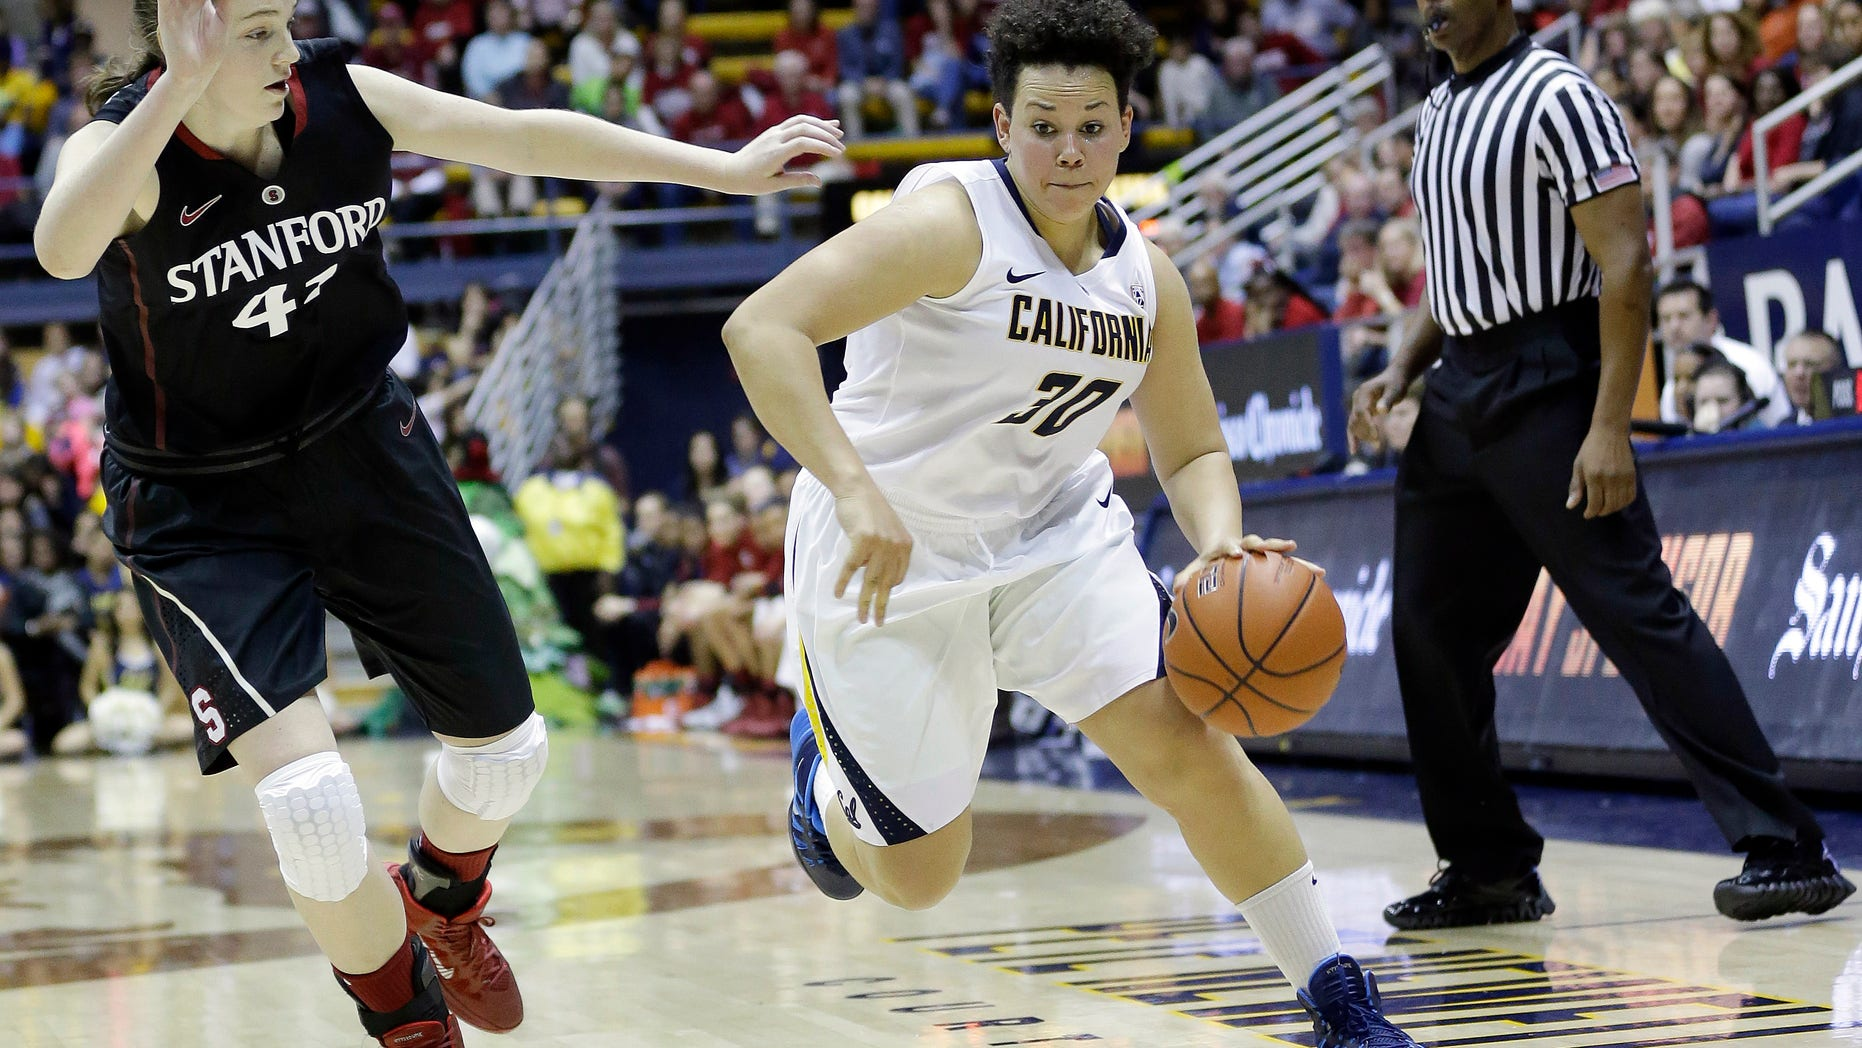 In this photo taken on Feb. 2, 2013, California guard Mikayla Lyles (30) dribbles past Stanford forward Bonnie Samuelson during the second half on an NCAA college basketball game in Berkeley, Calif. Lyles moved into the starting lineup for the first time in her four-year California career during a pair of games against rival Stanford last week, and did everything to show she belongs by knocking down clutch shots and making key hustle plays. (AP Photo/Marcio Jose Sanchez)